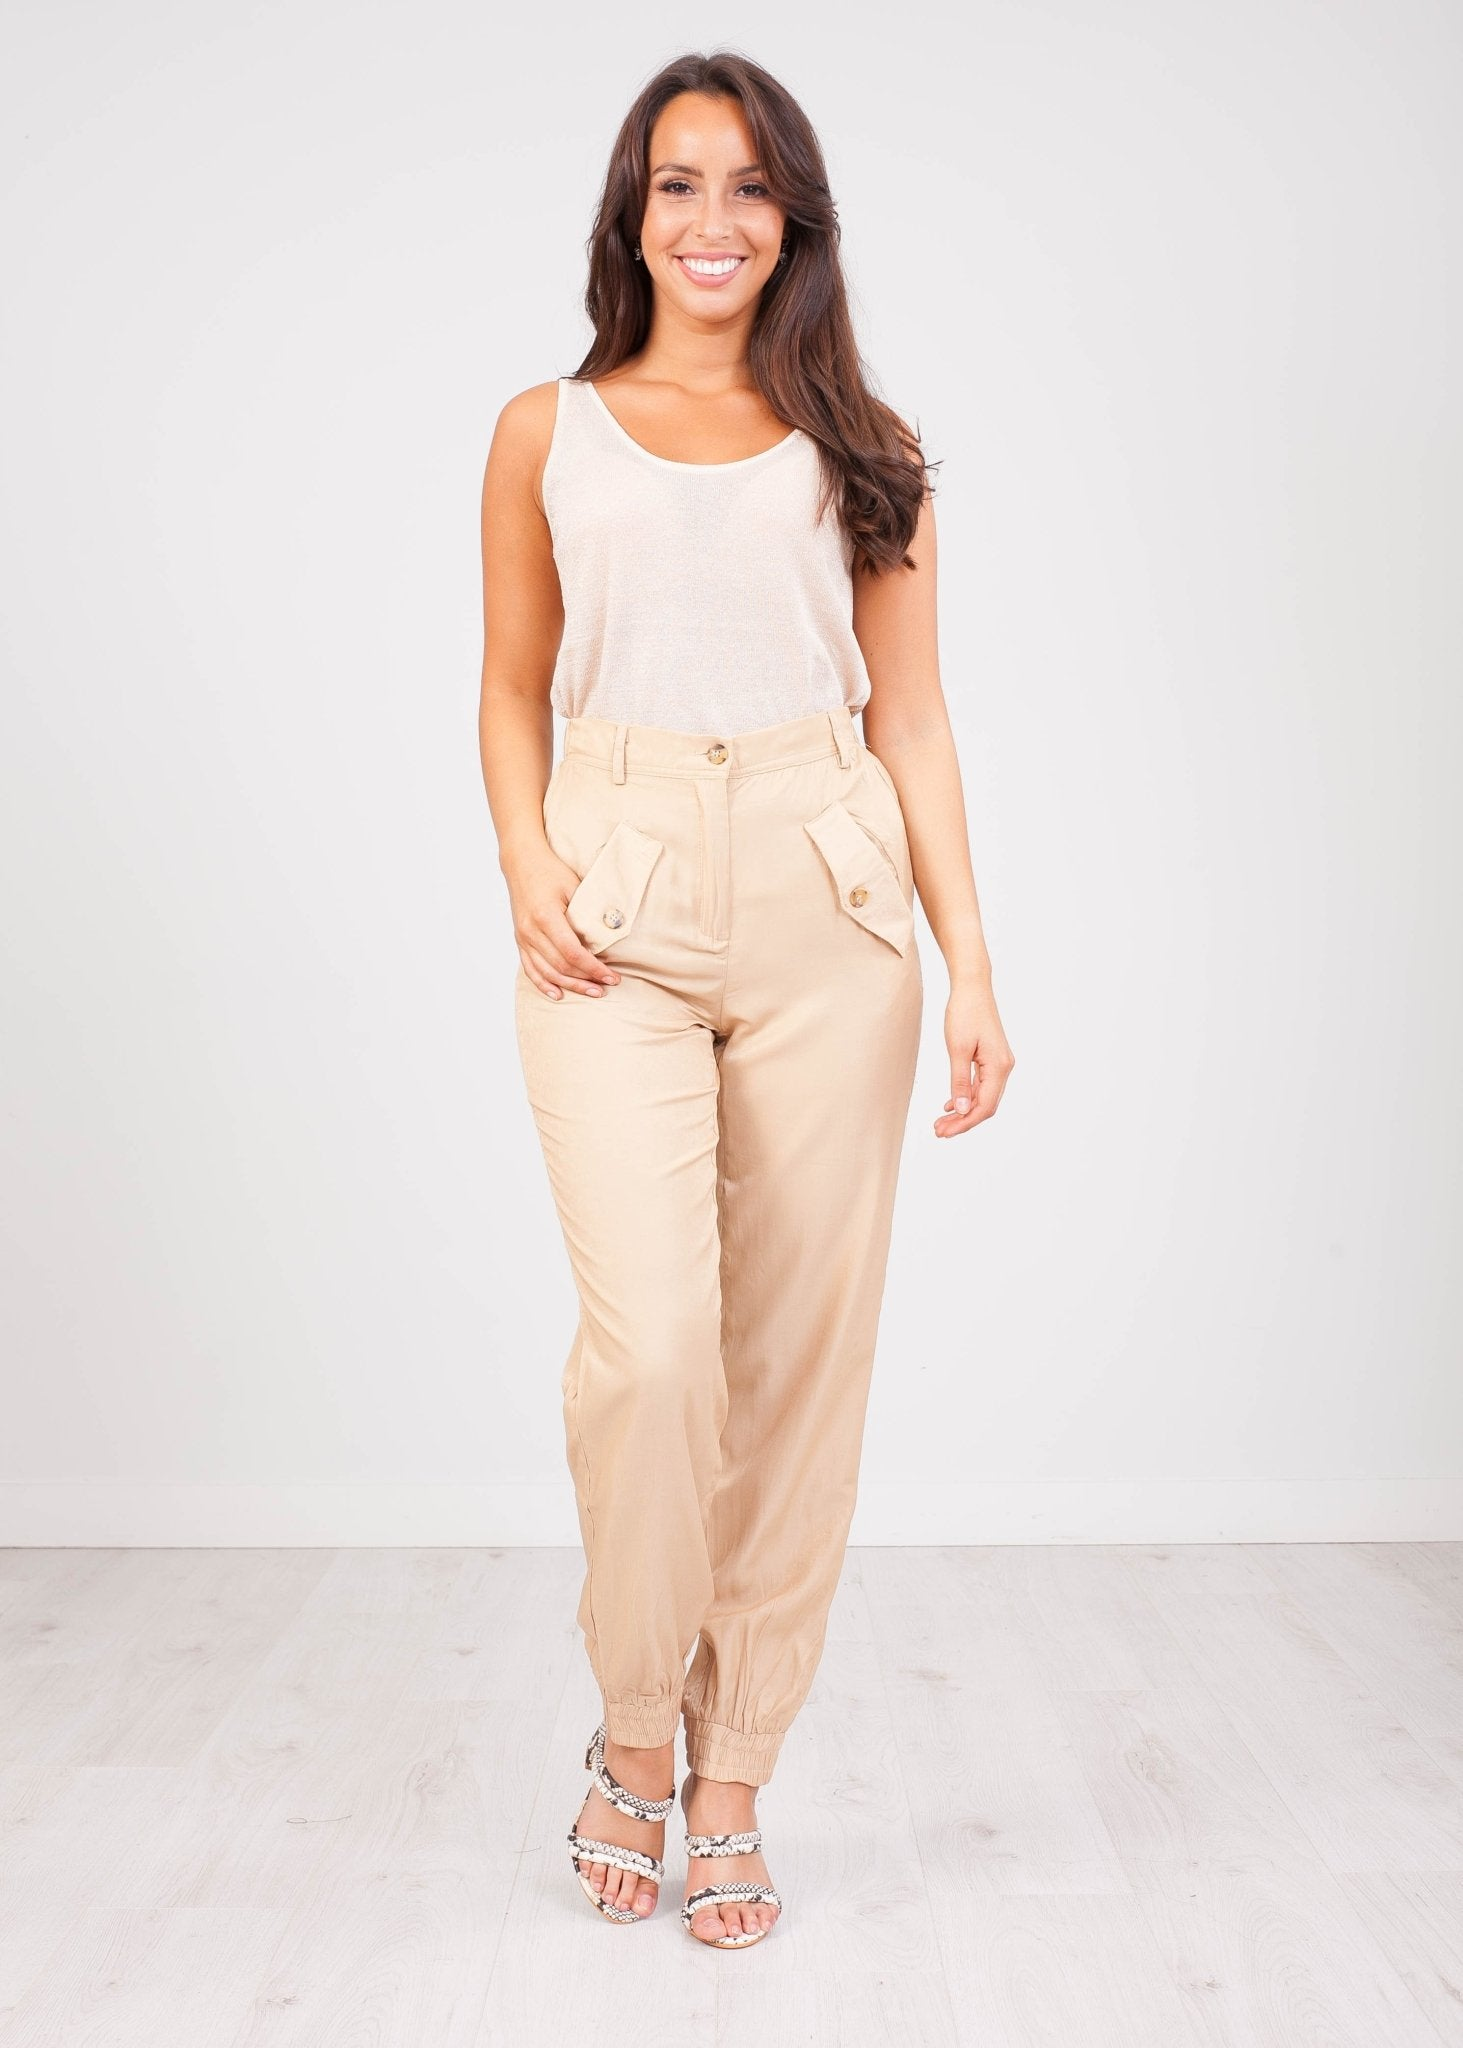 Sissy Sand Trousers - The Walk in Wardrobe